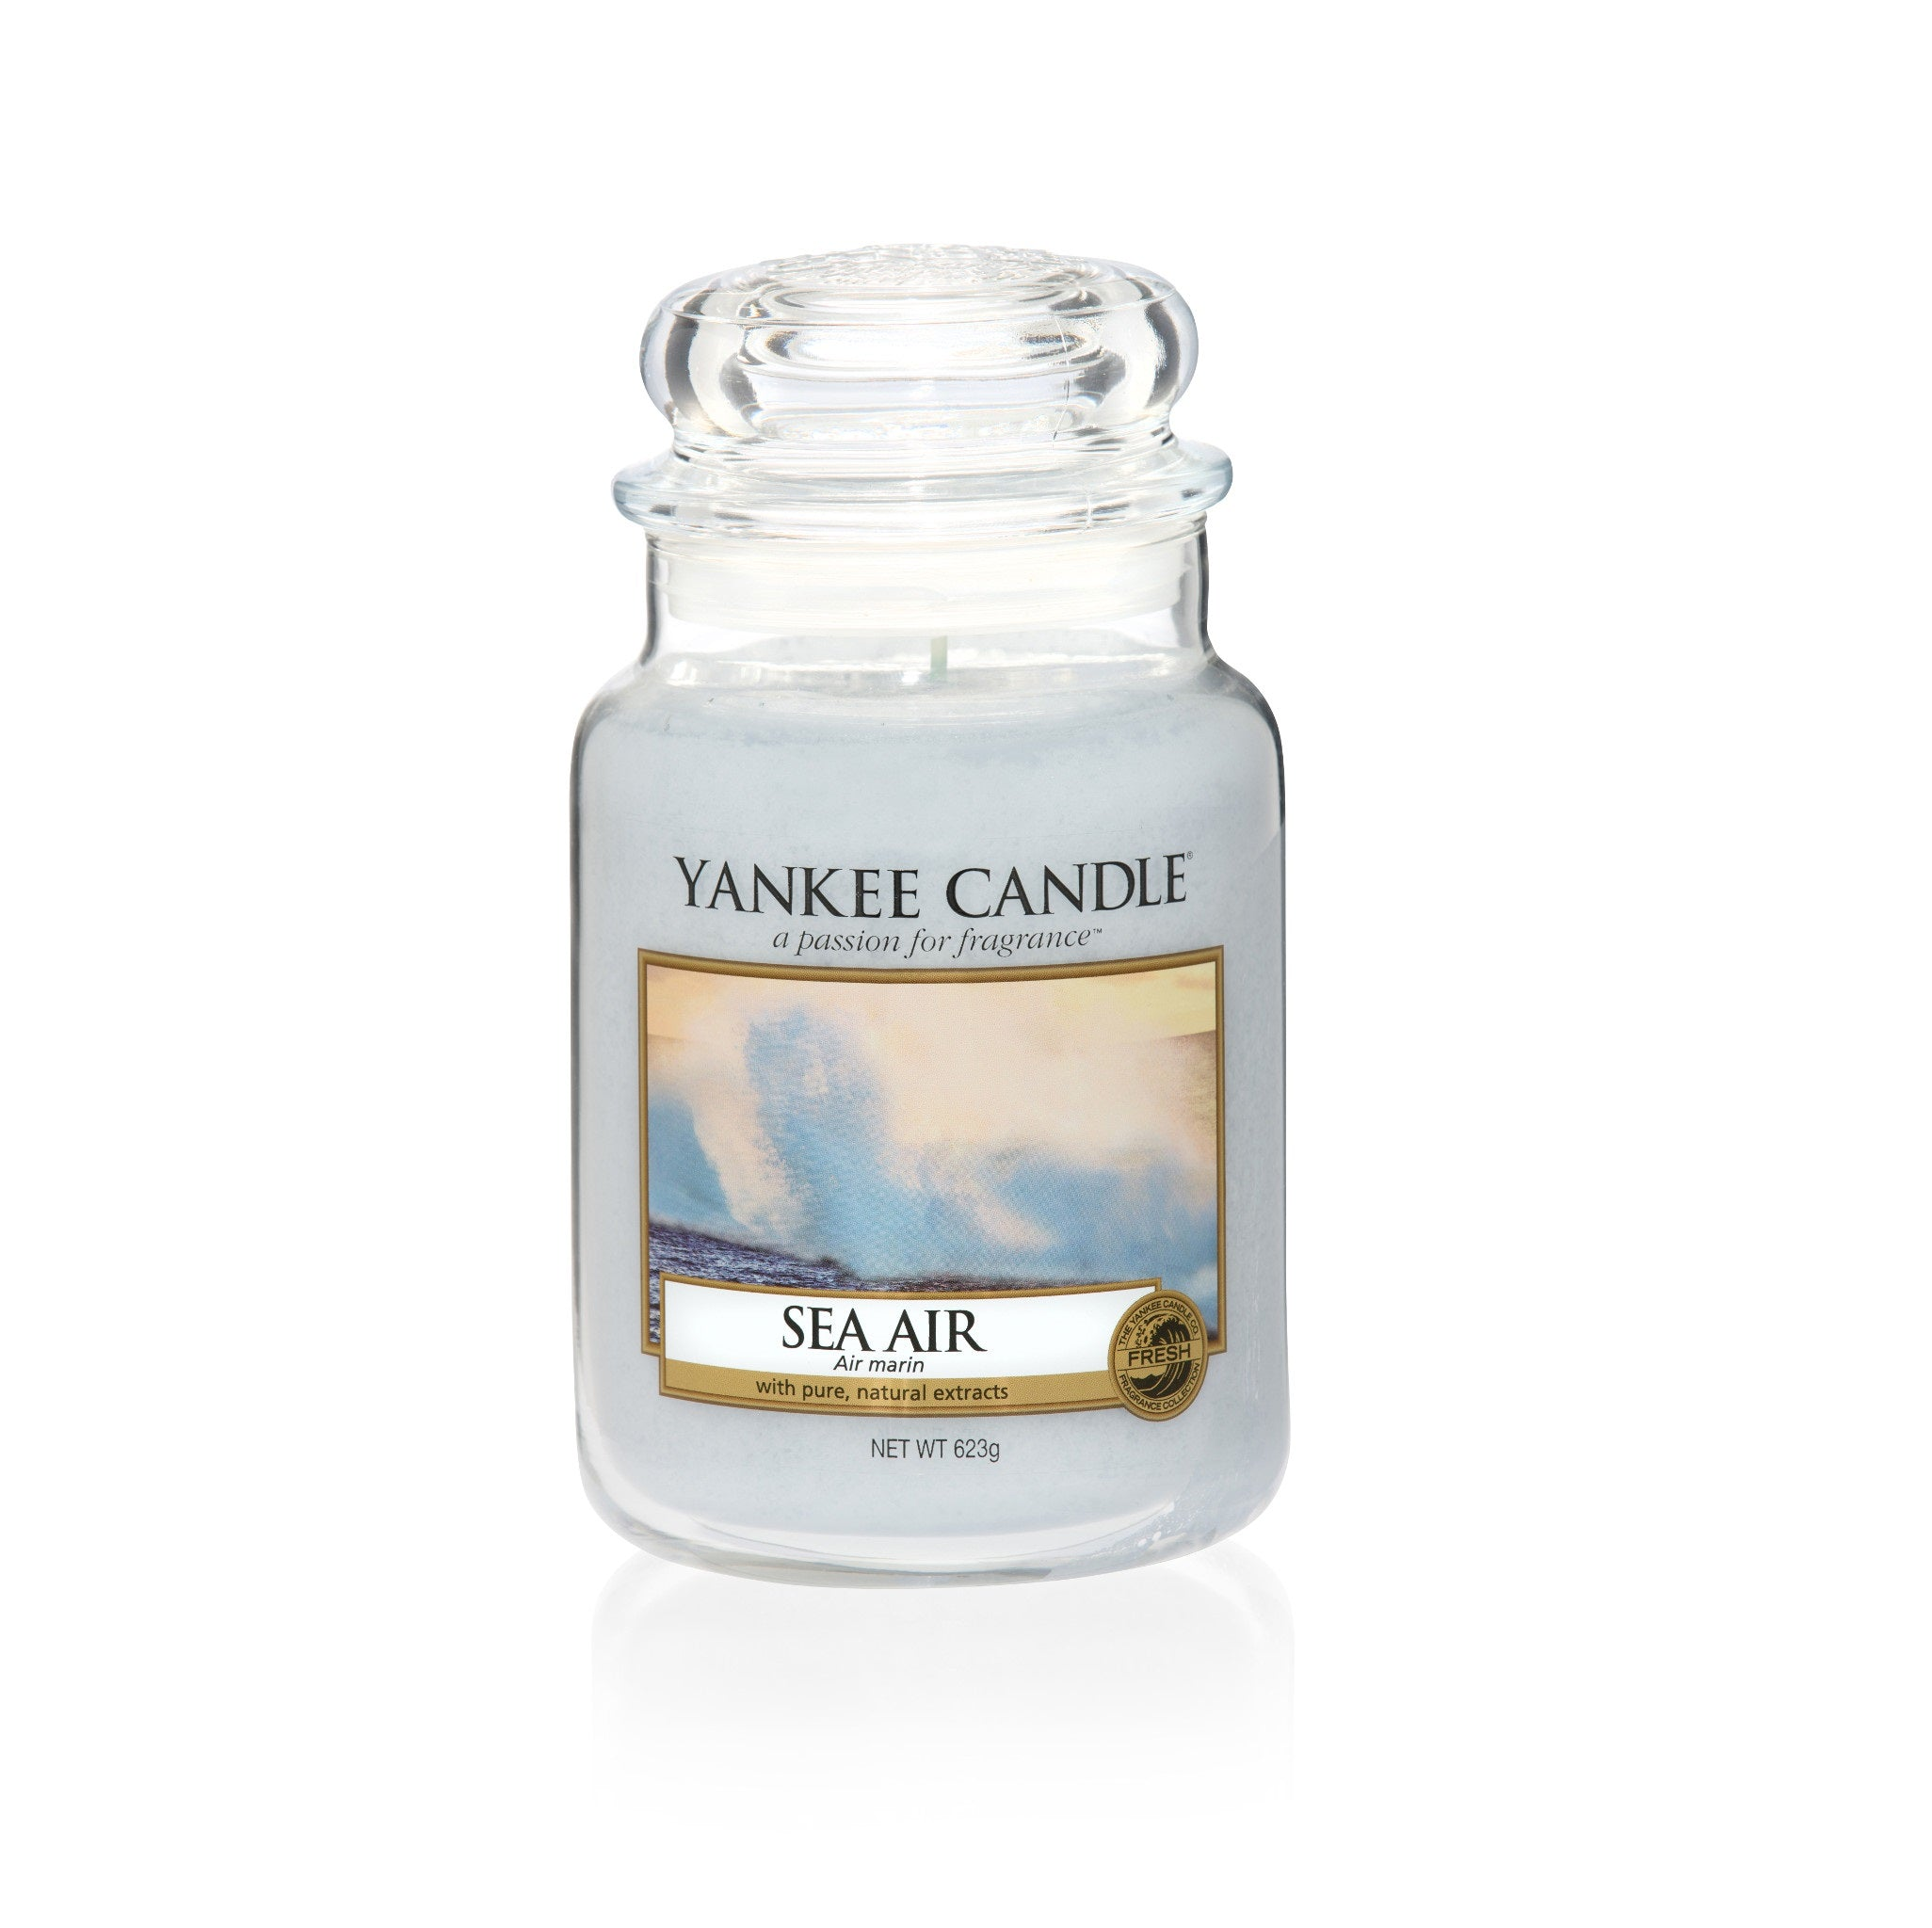 SEA AIR -Yankee Candle- Giara Grande